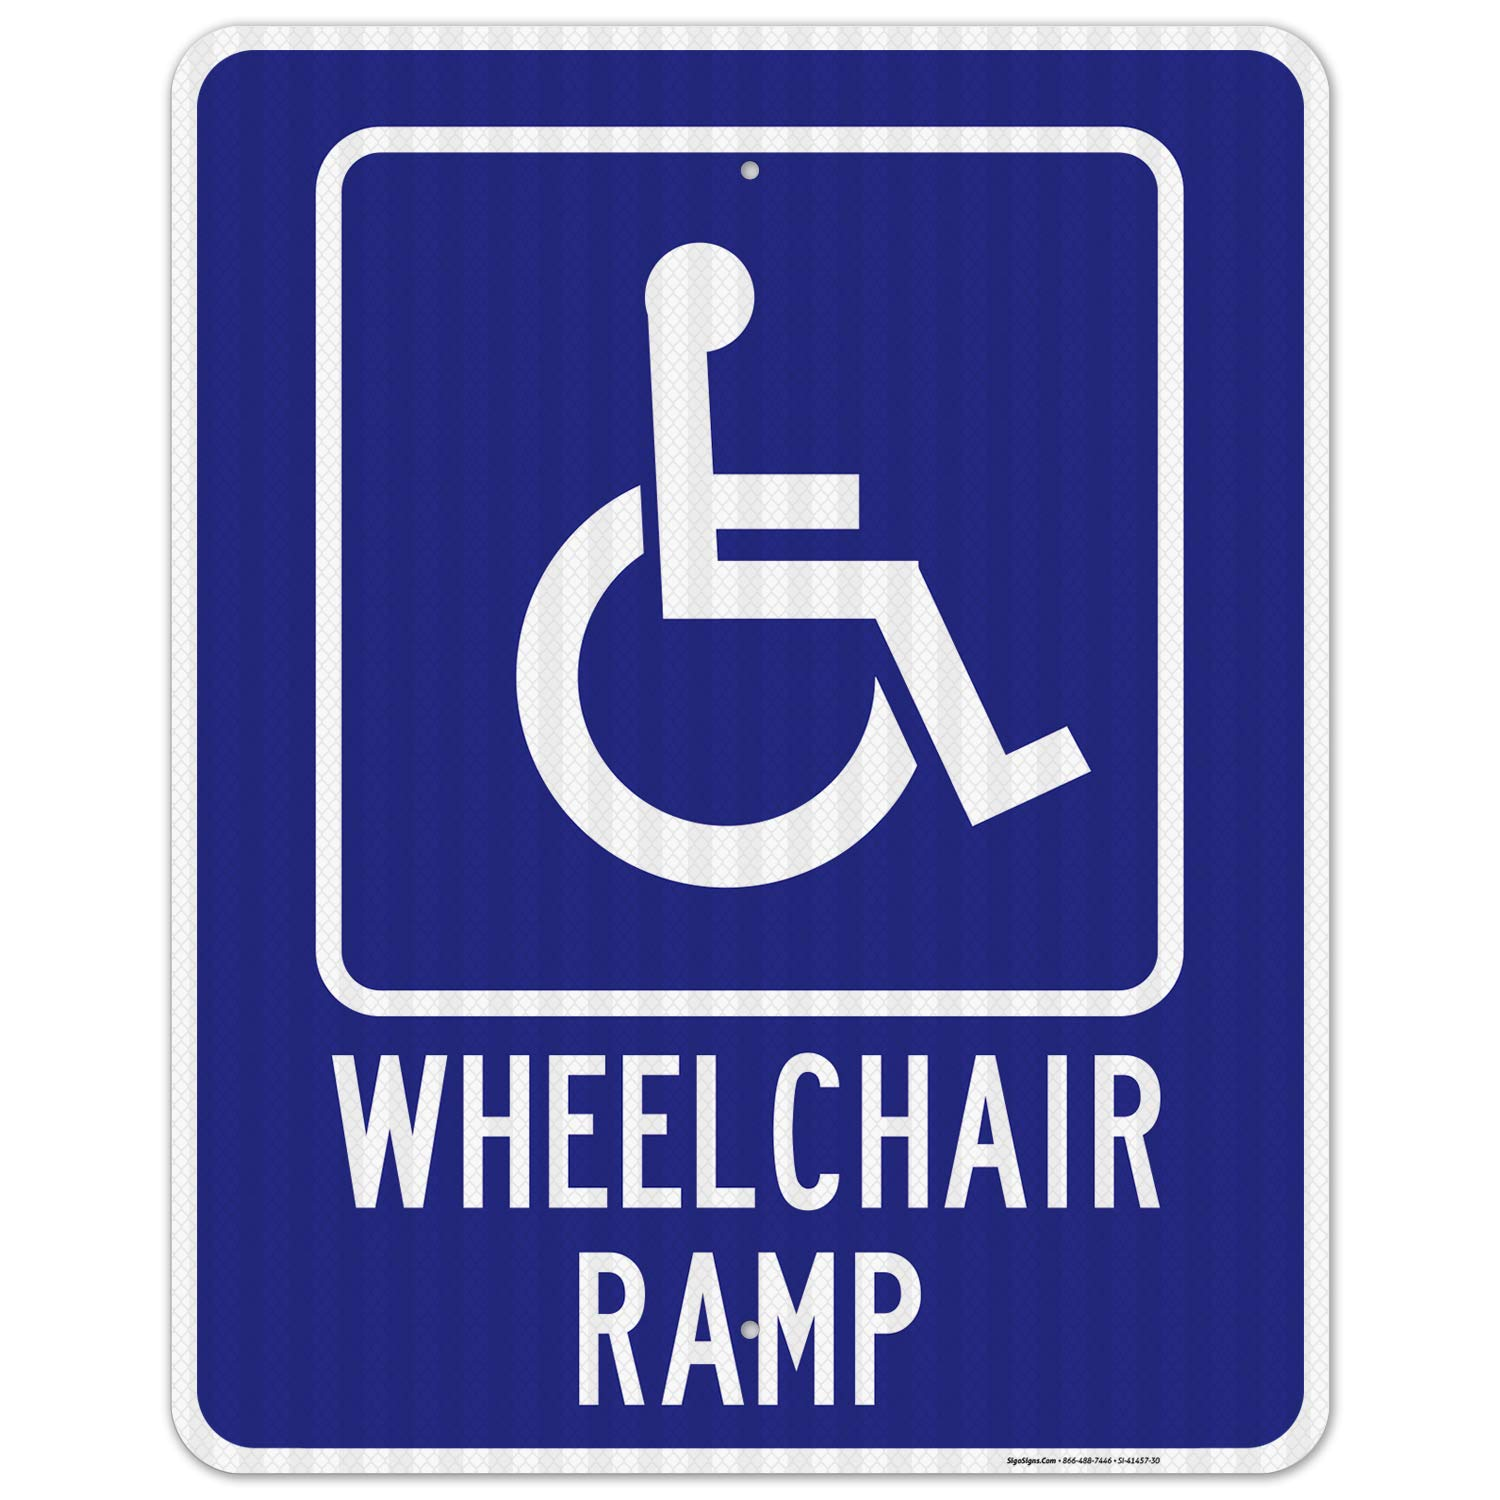 Wheelchair Ramp Sign 24x30 Inches Many popular brands Alumi .080 3M EGP Max 83% OFF Reflective